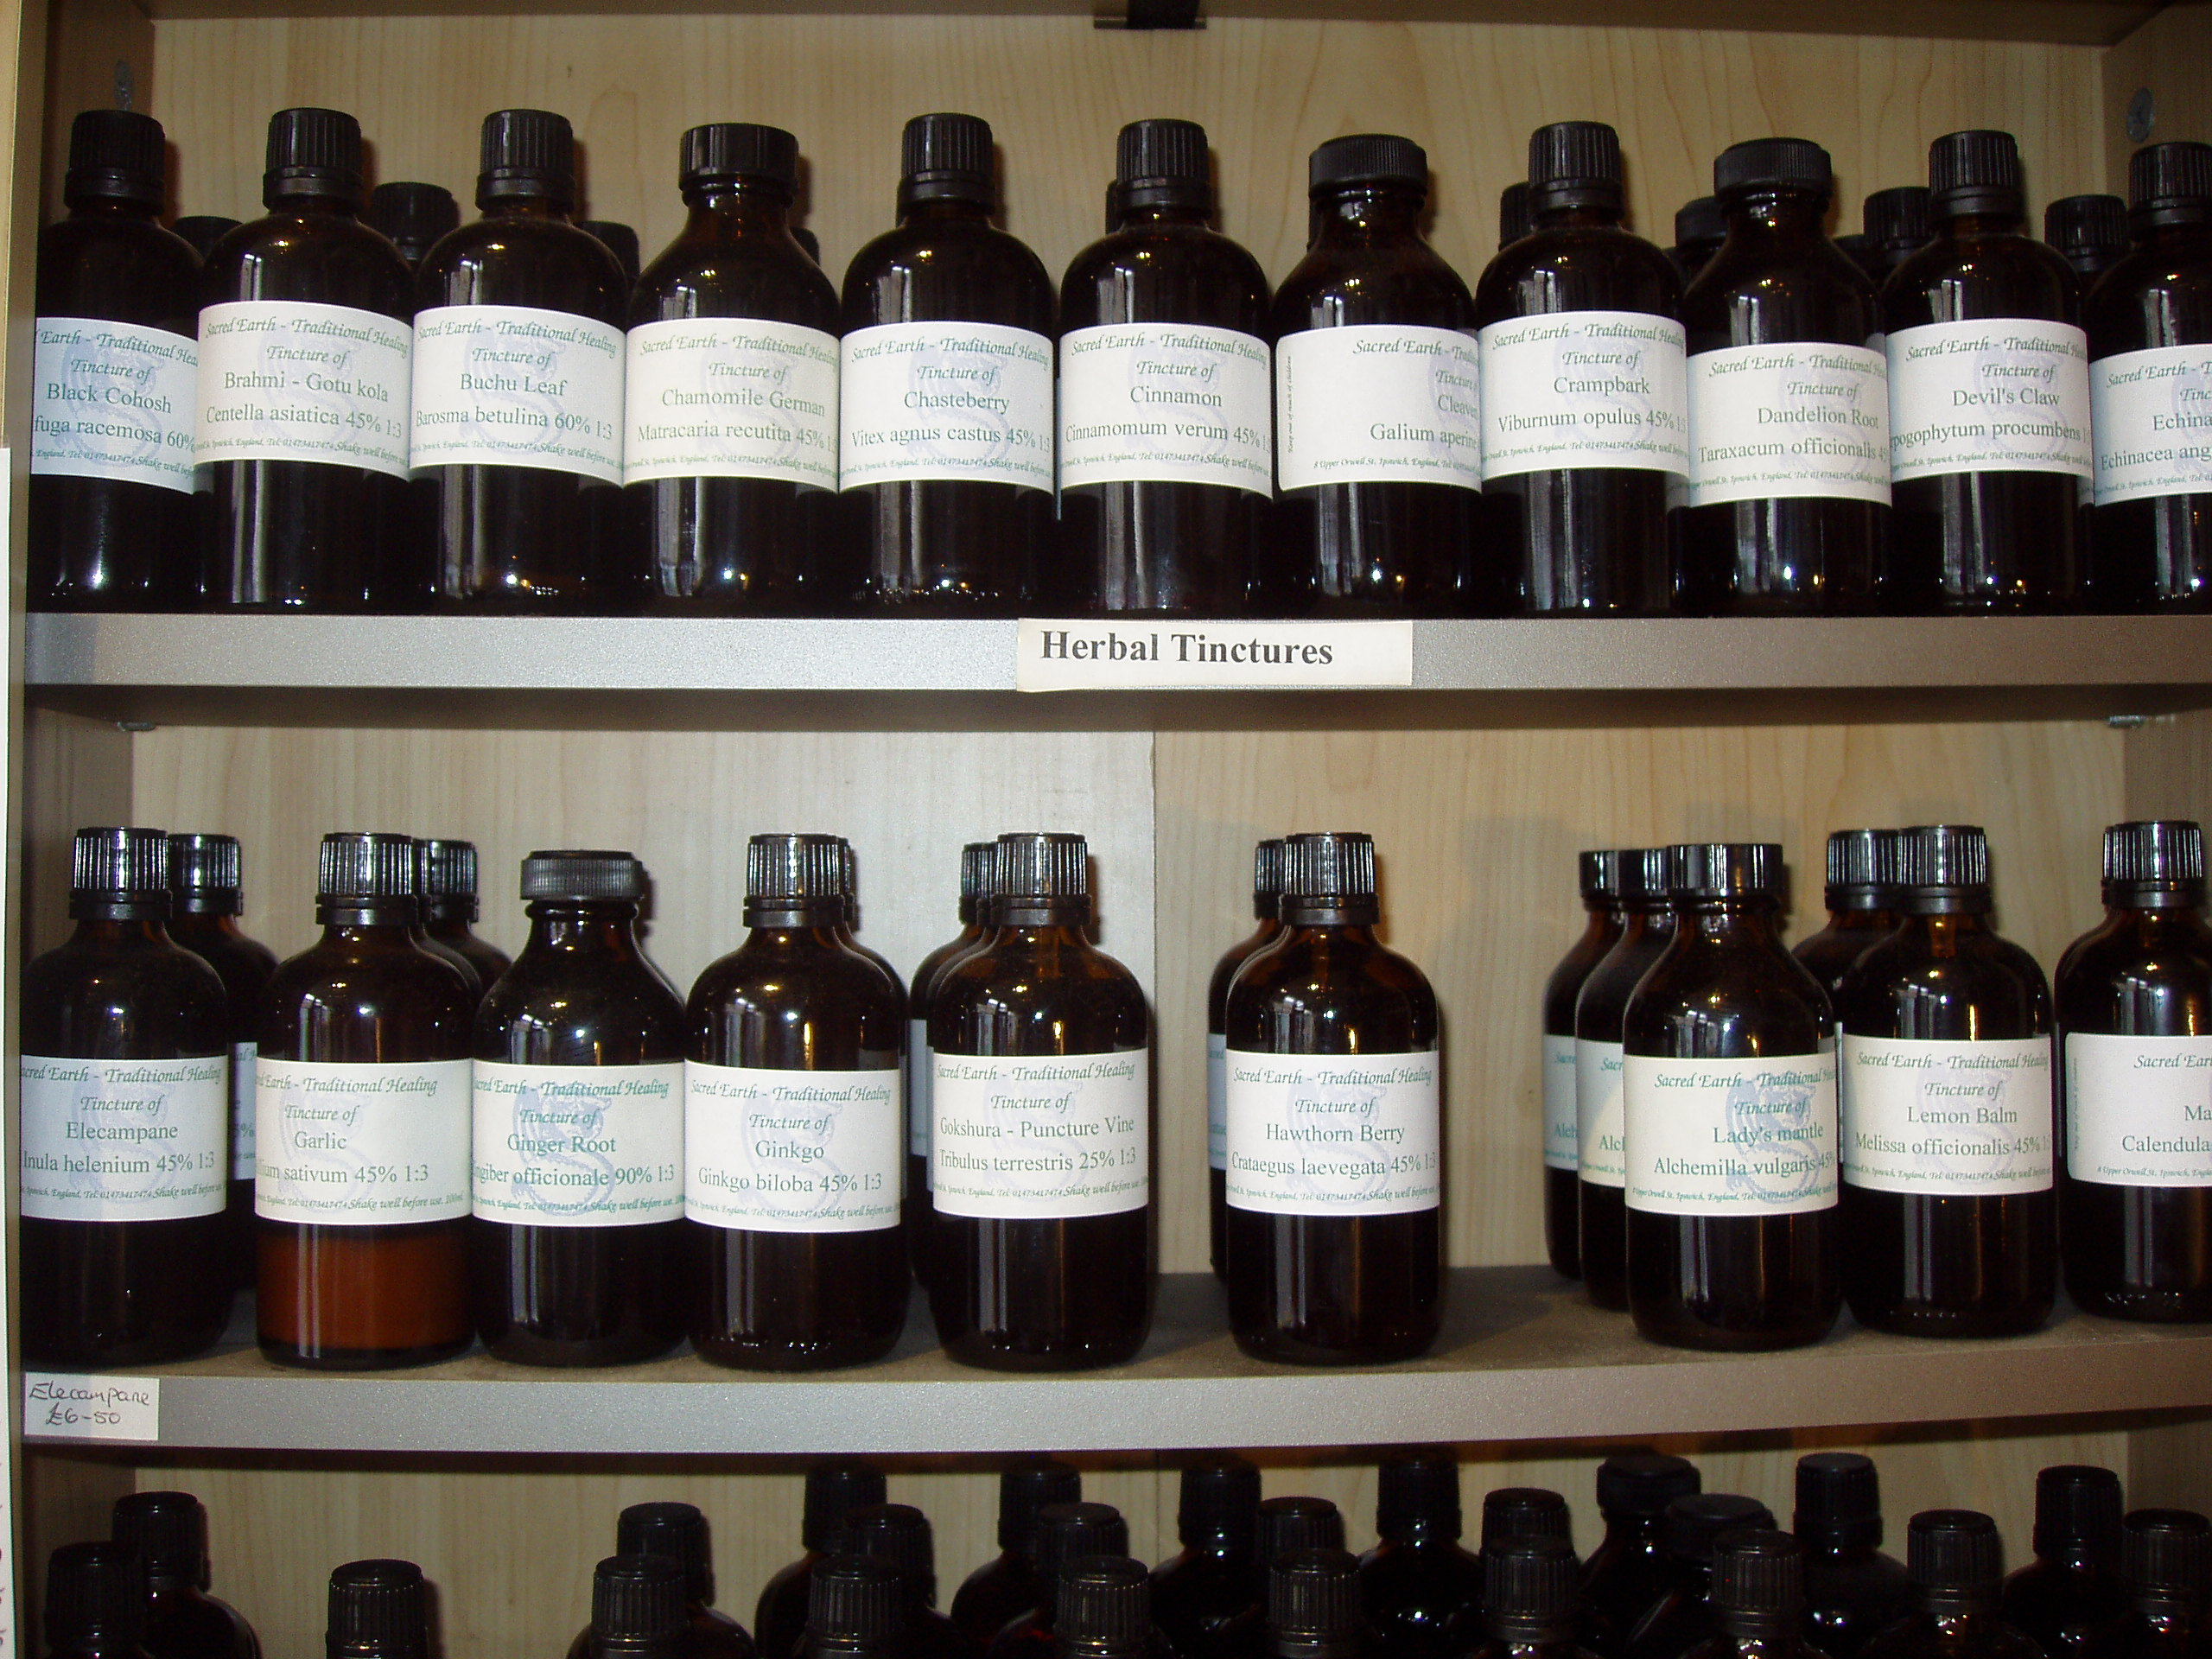 Herbal Tinctures - Buchu